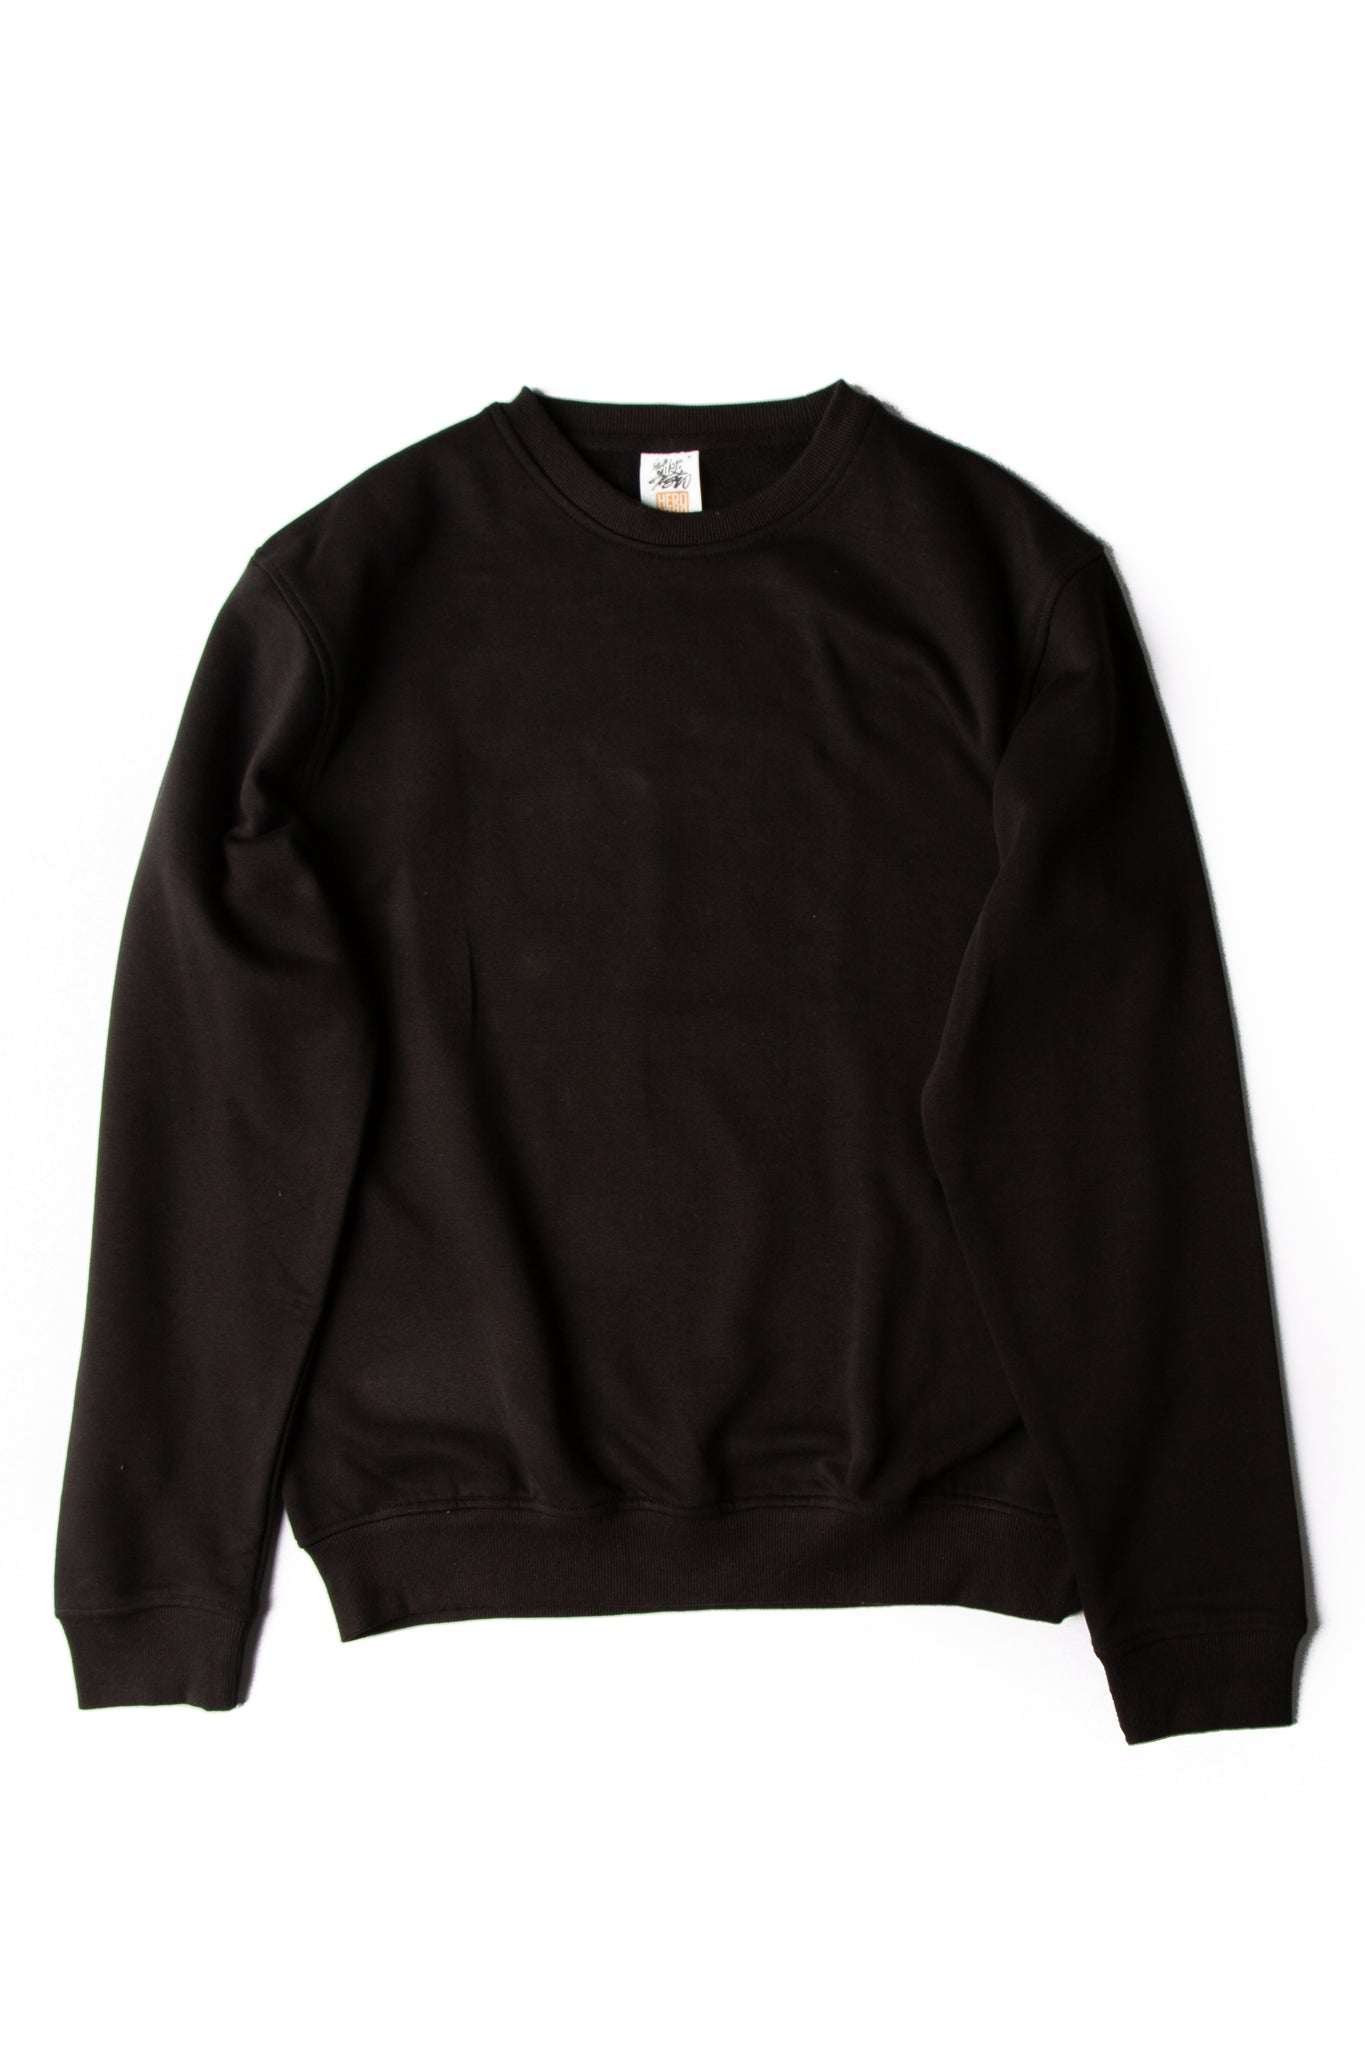 HERO-1020 Unisex Blank Crewneck Sweatshirt - Black